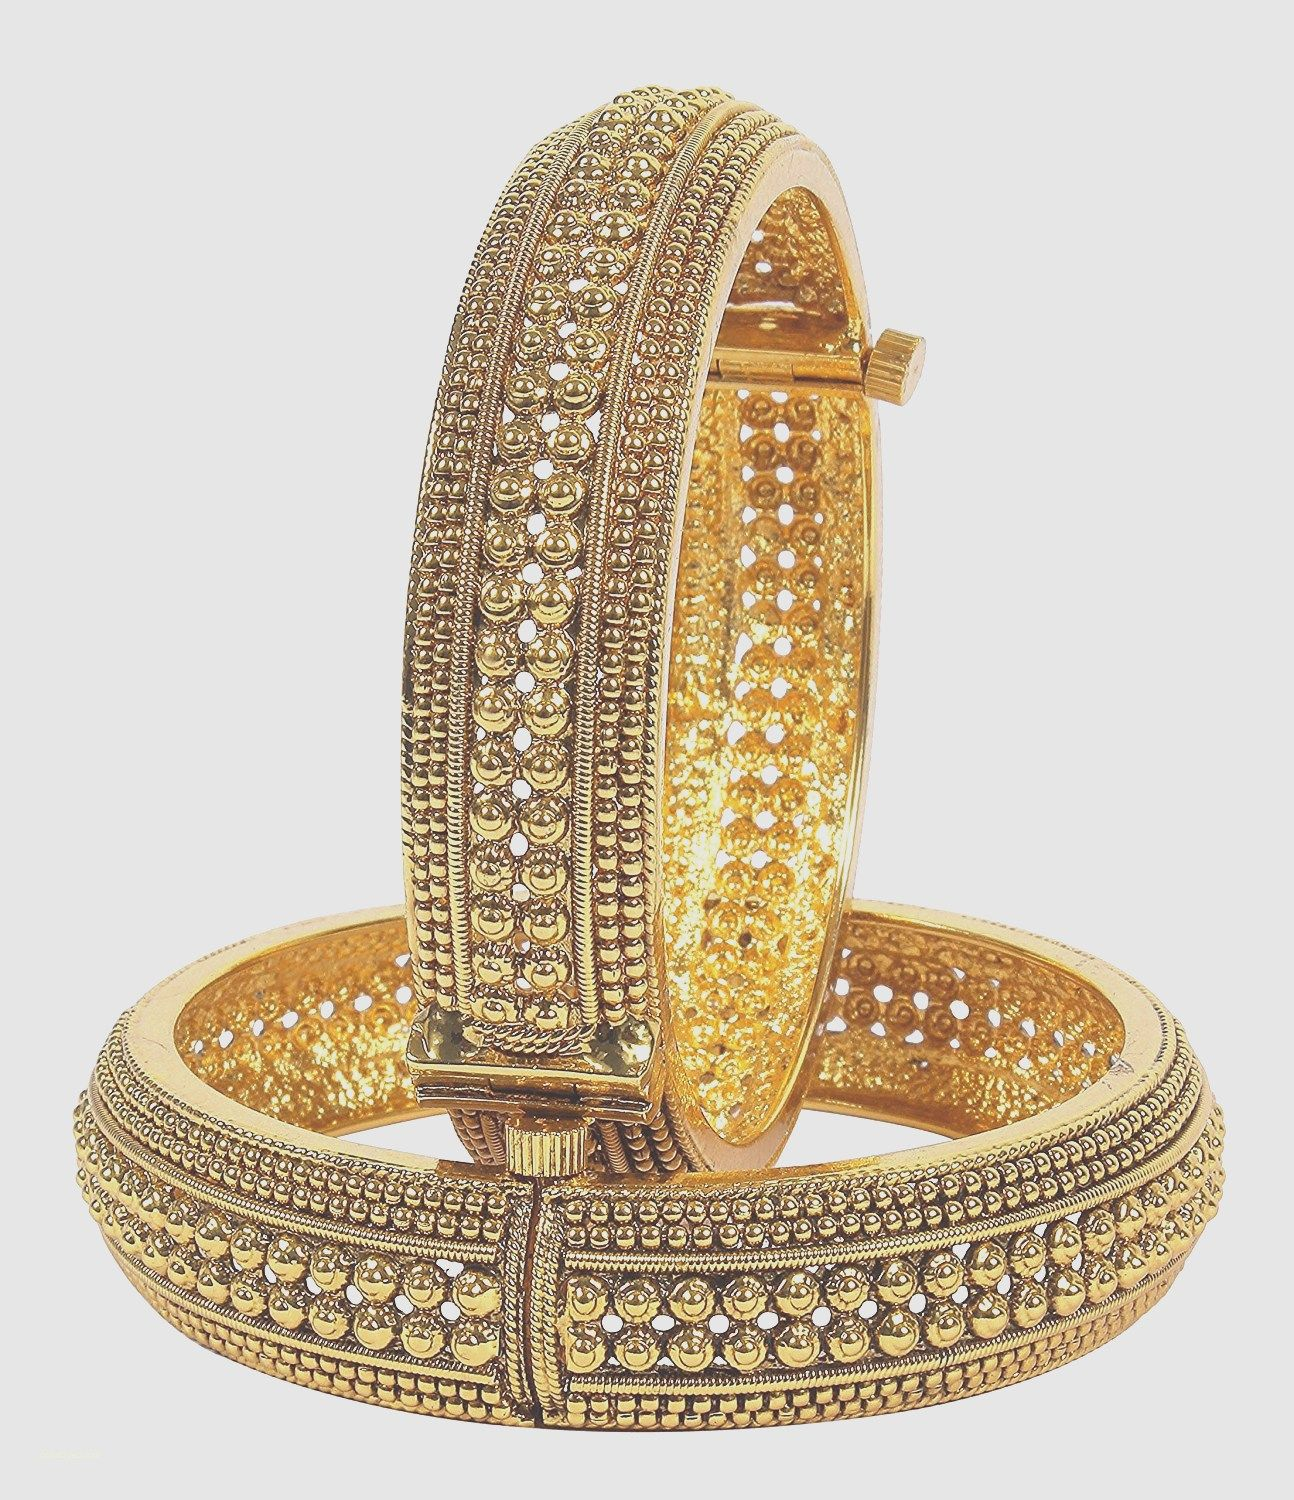 Gold Ring Designs for Women - New Gold Ring Designs for Women, 18k Roes Gold Fas...